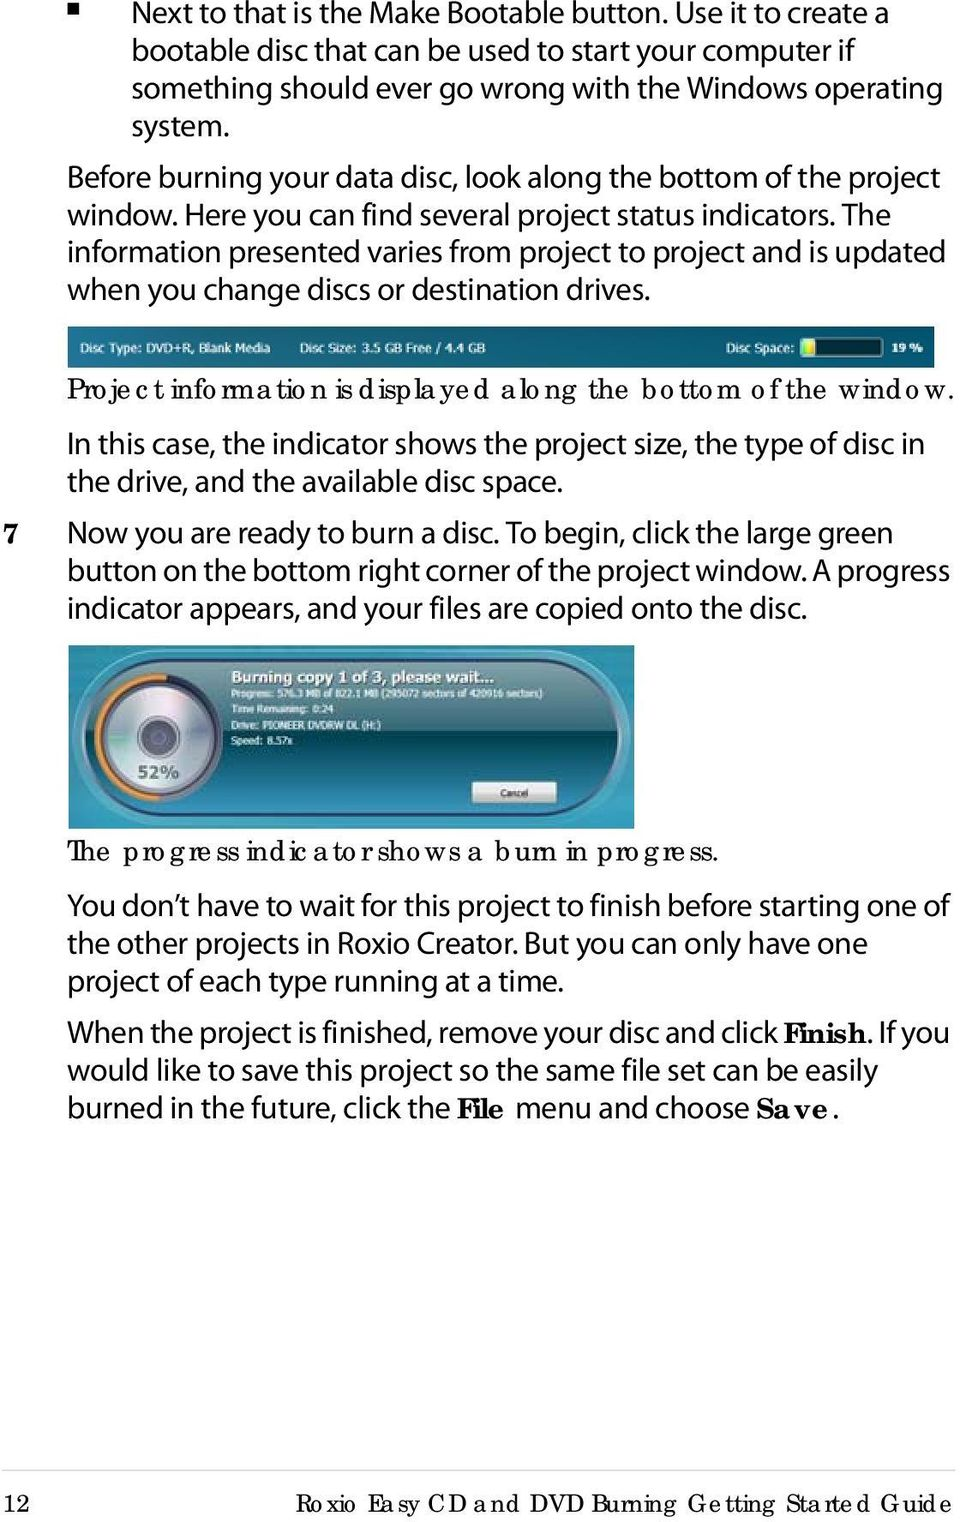 The information presented varies from project to project and is updated  when you change discs or